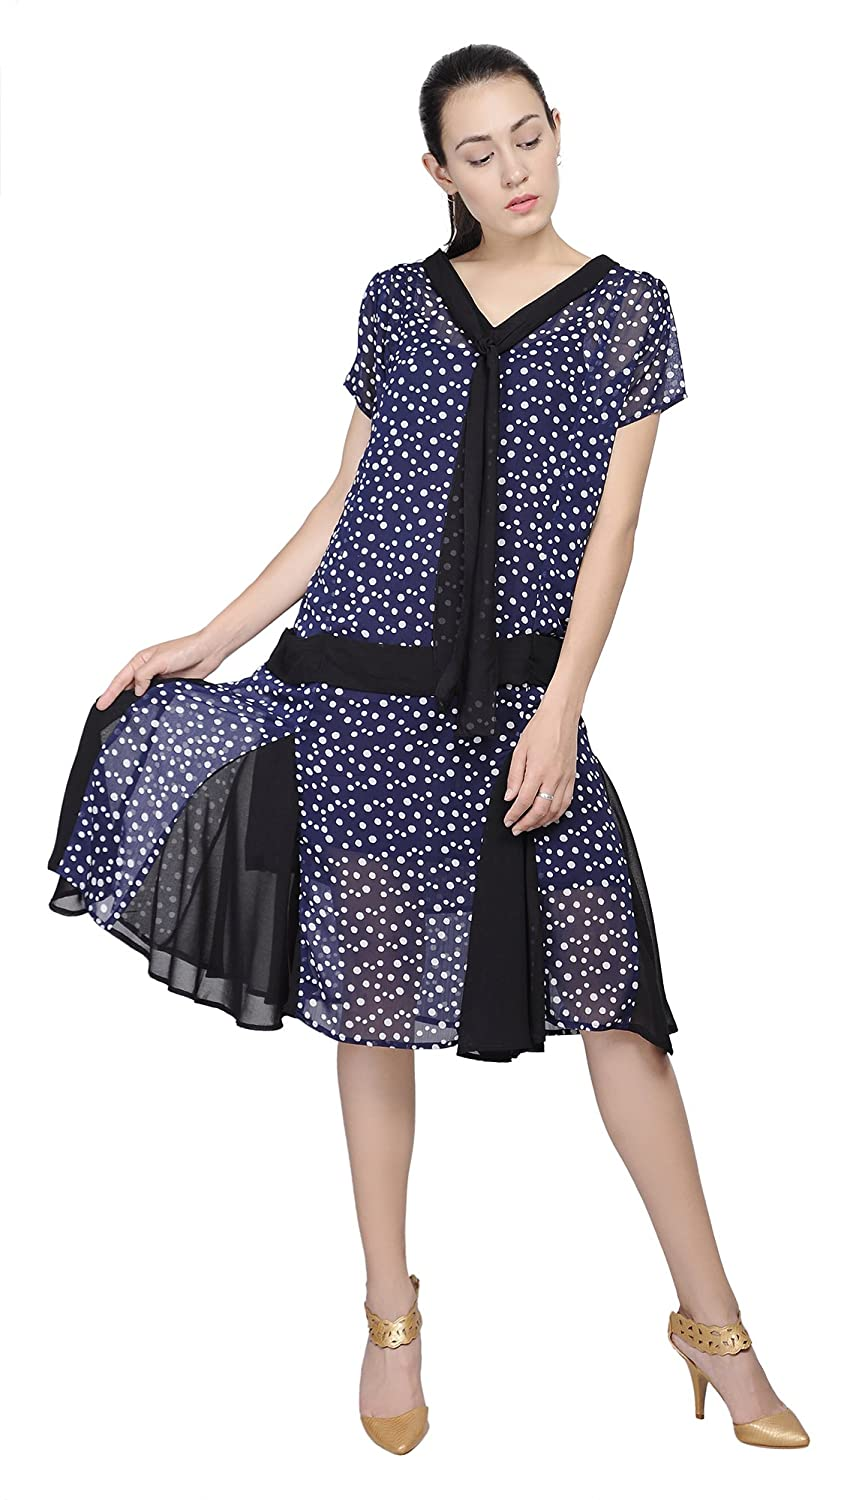 Plus Size Vintage Dresses, Plus Size Retro Dresses Marycrafts Woment Drop Waist 1920s Lined Floral Godet Dress $36.90 AT vintagedancer.com